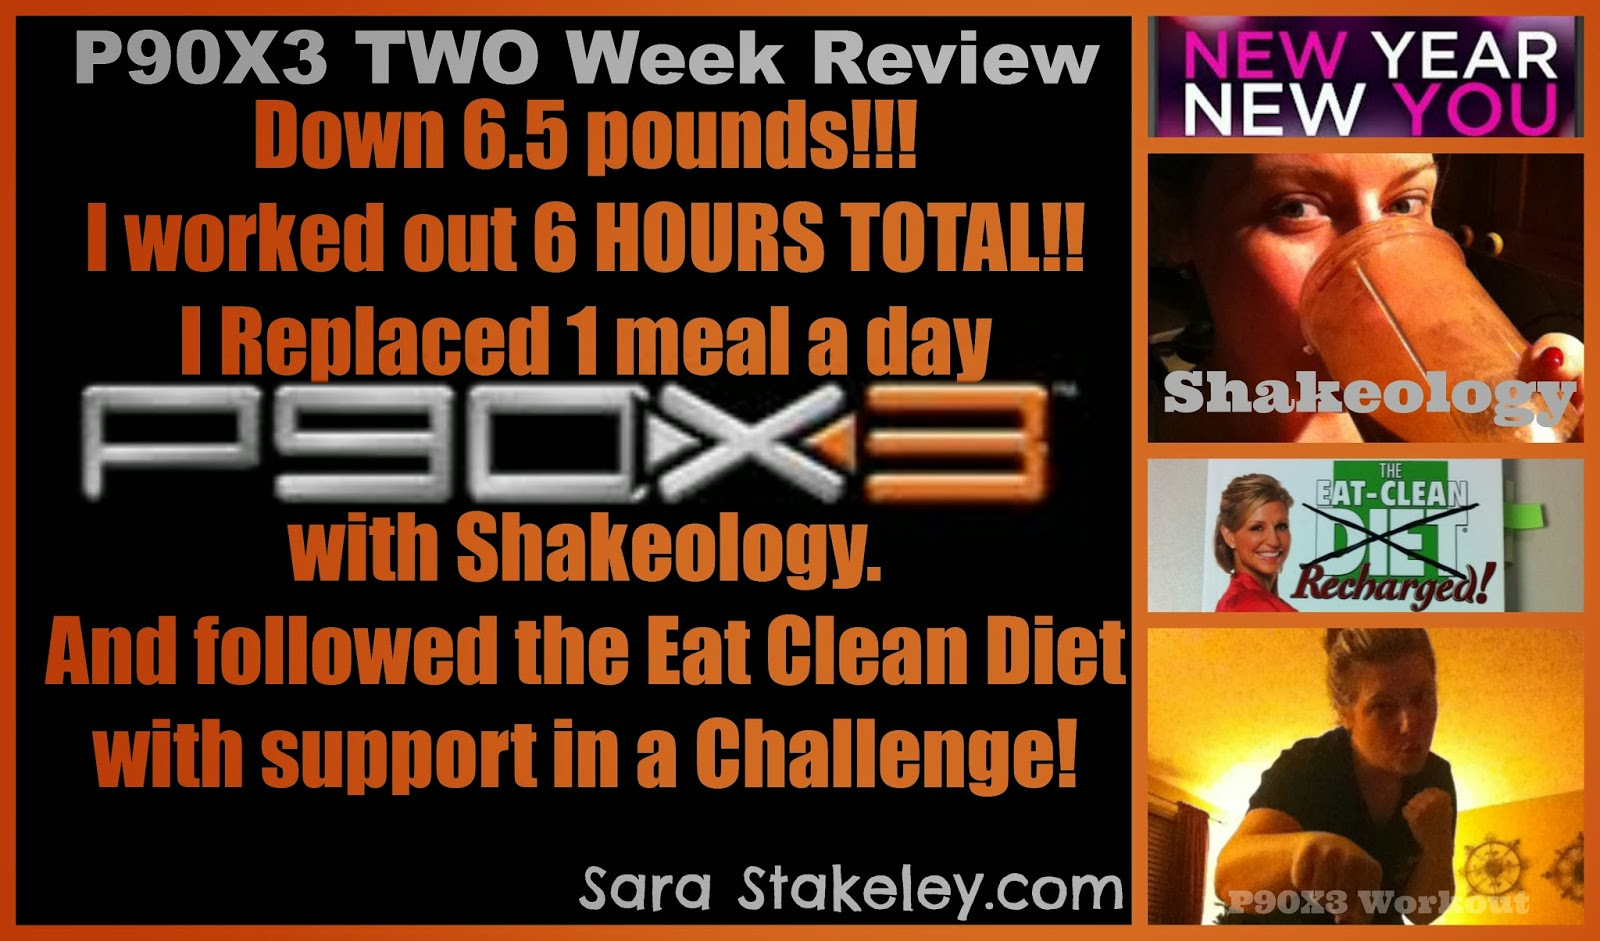 P90X3 Review,challenge, eat clean, get healthy, lose weight, Lost 6 pounds in two weeks, motivation, P90X3, P90X3 review, Sara Stakeley, support, support group for P90X3, Week two P90X3, workout, workout 30 minutes a day,